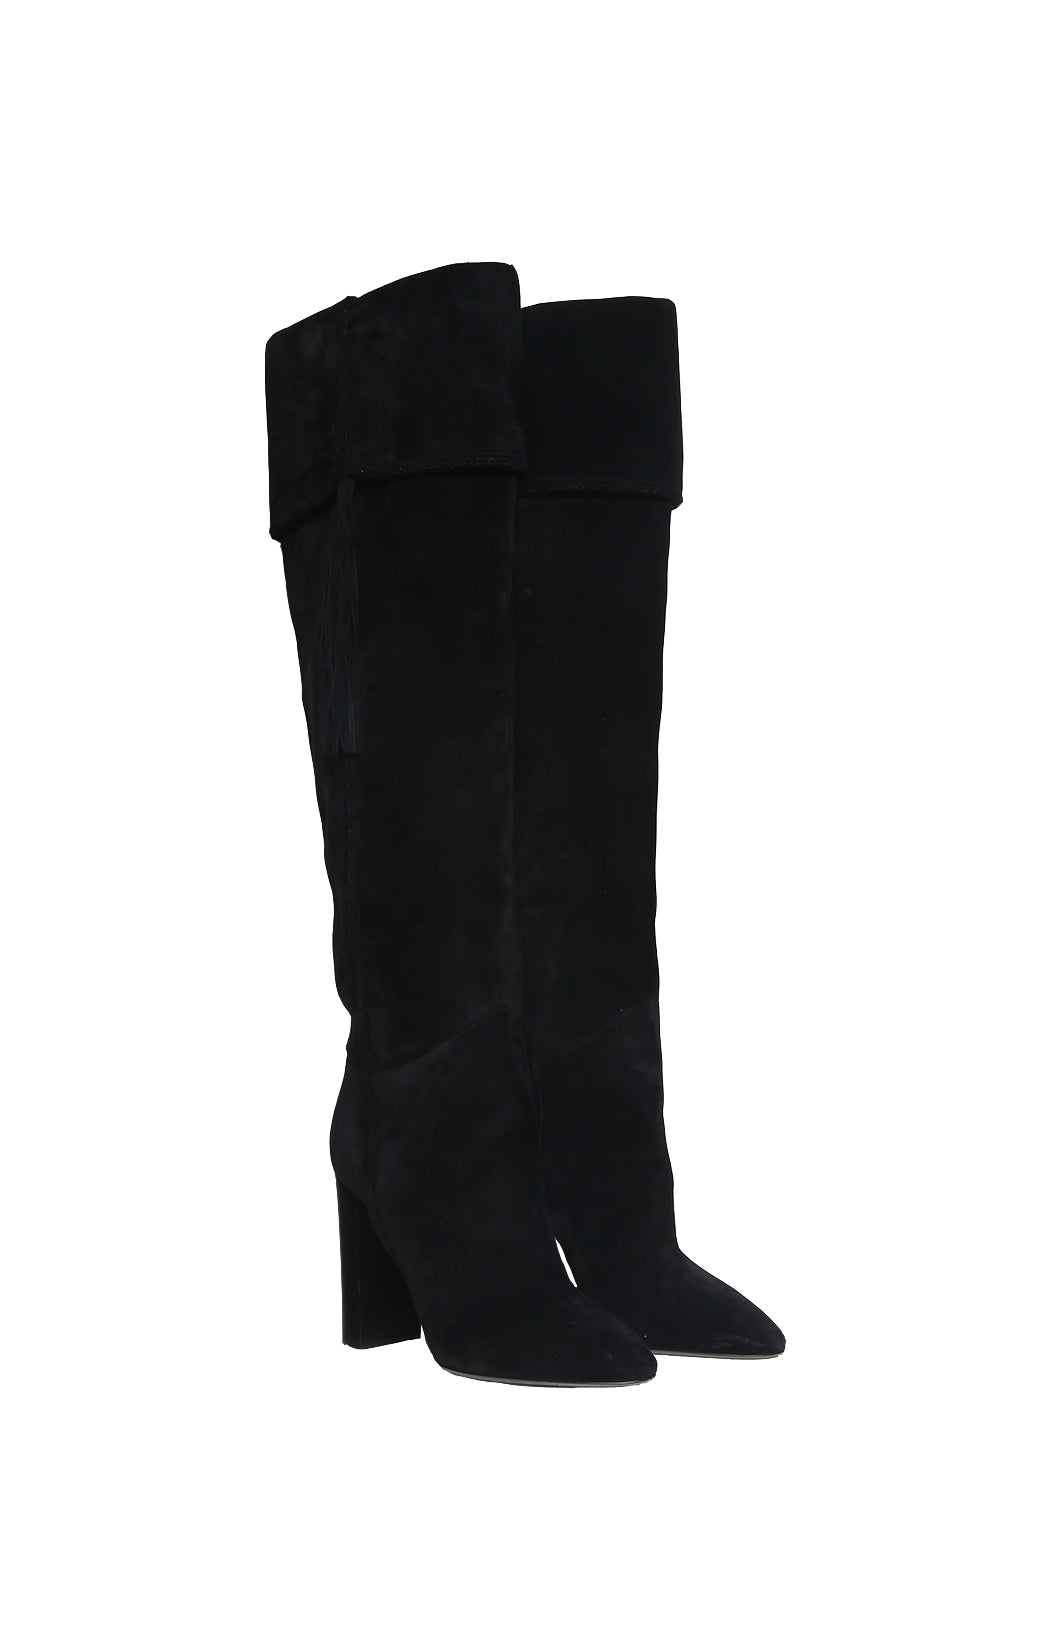 Front view of SAINT LAURENT Boot Size: 38.5 (US 8.5)